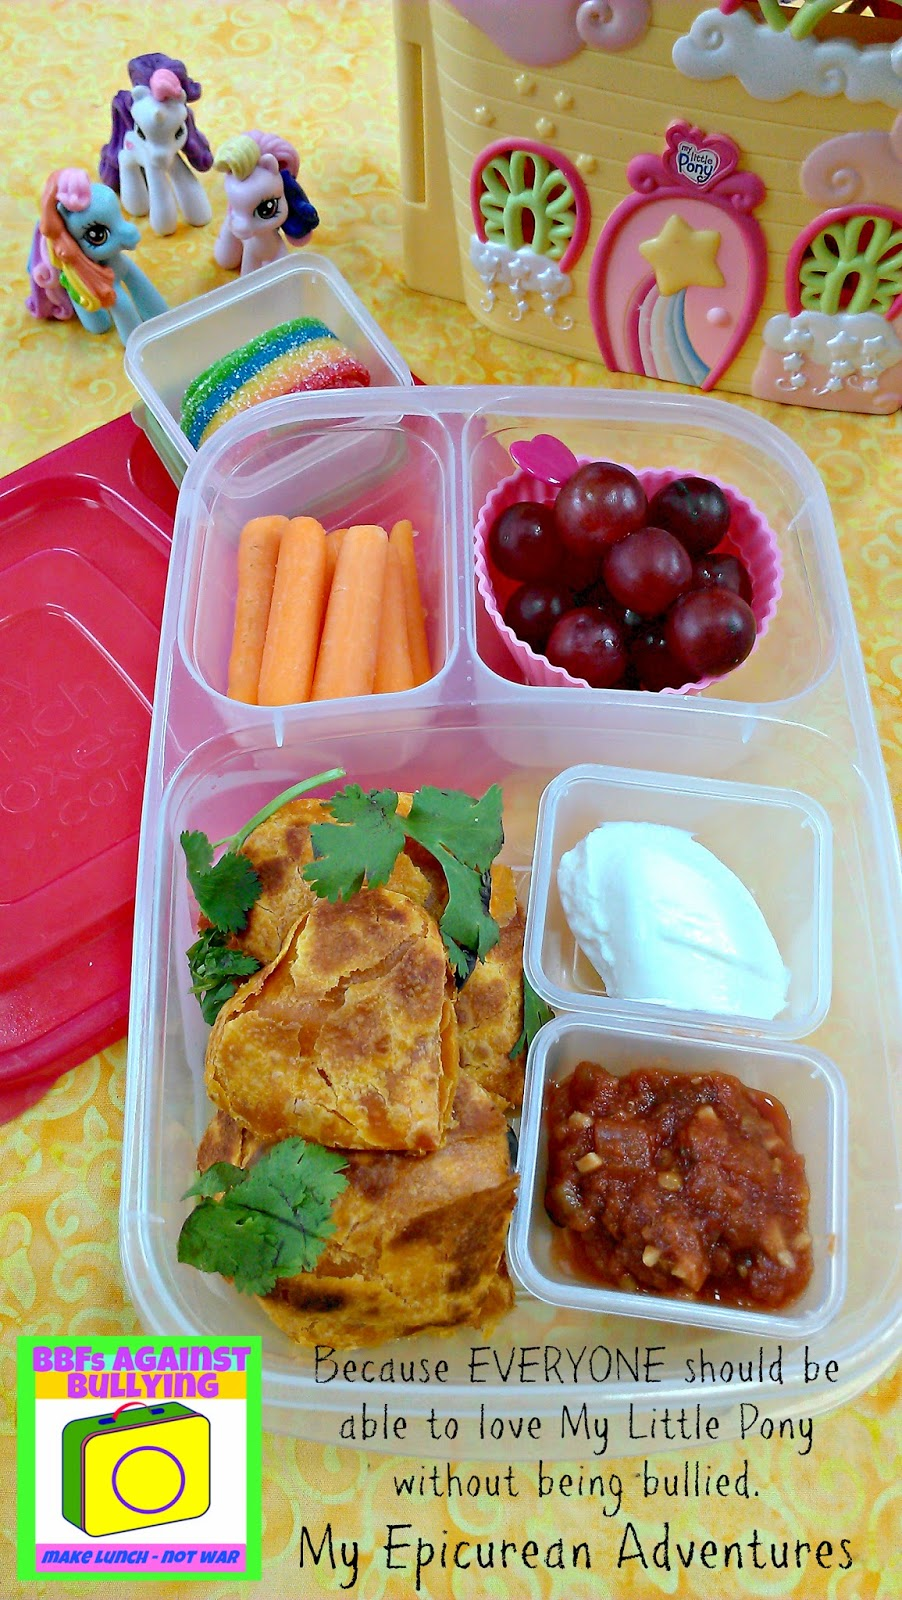 My Epicurean Adventures: Anti-Bullying Blog Hop Lunch in #Easylunchboxes